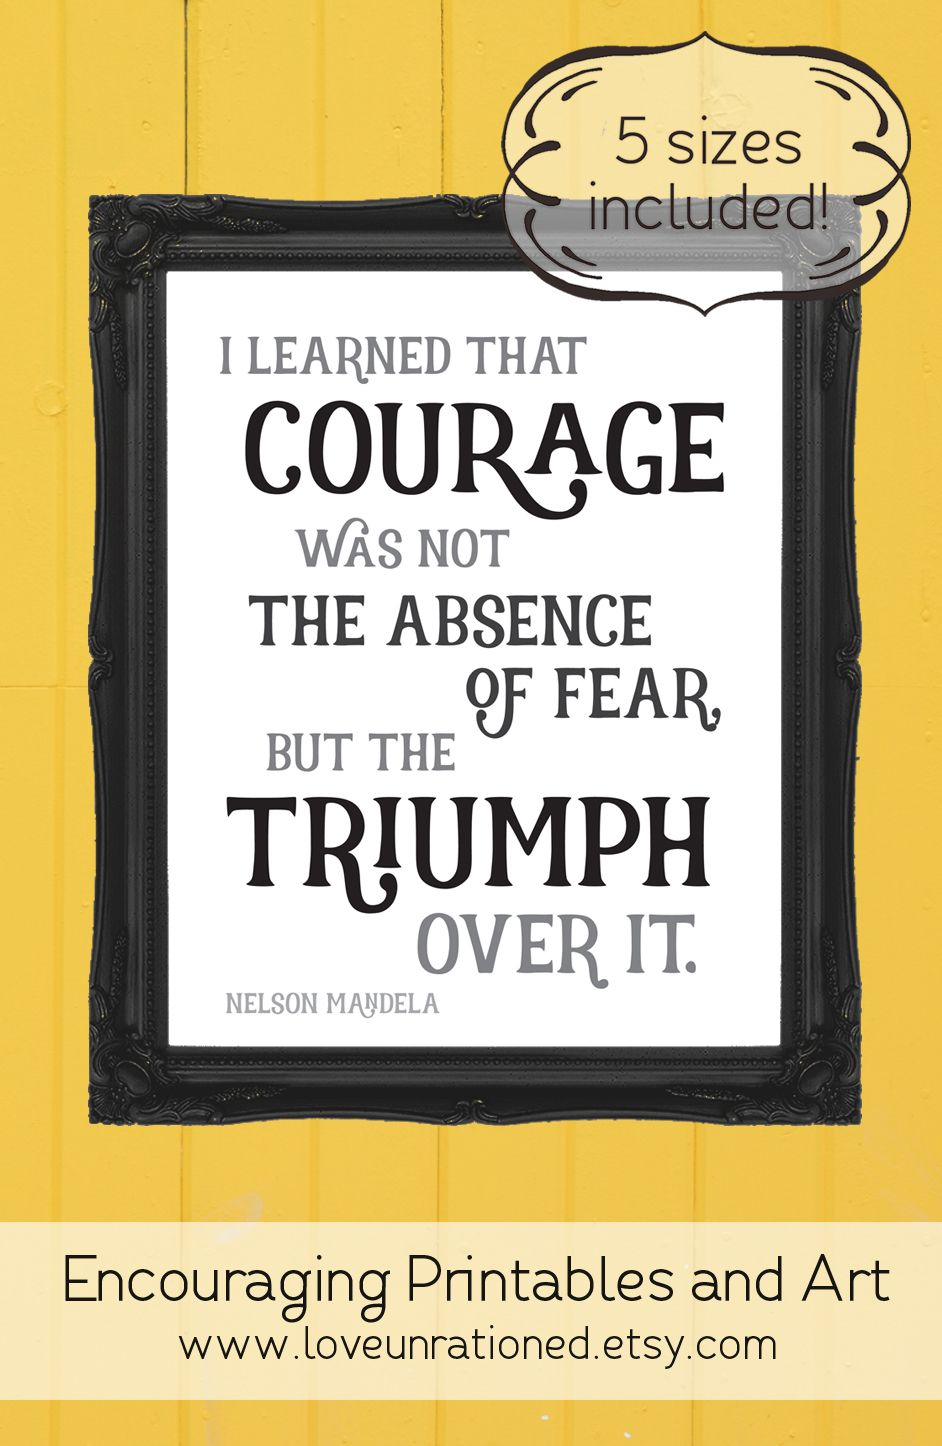 I Love This Nelson Mandela Quote Printable. Such A Great Reminder That  Courage Can Be